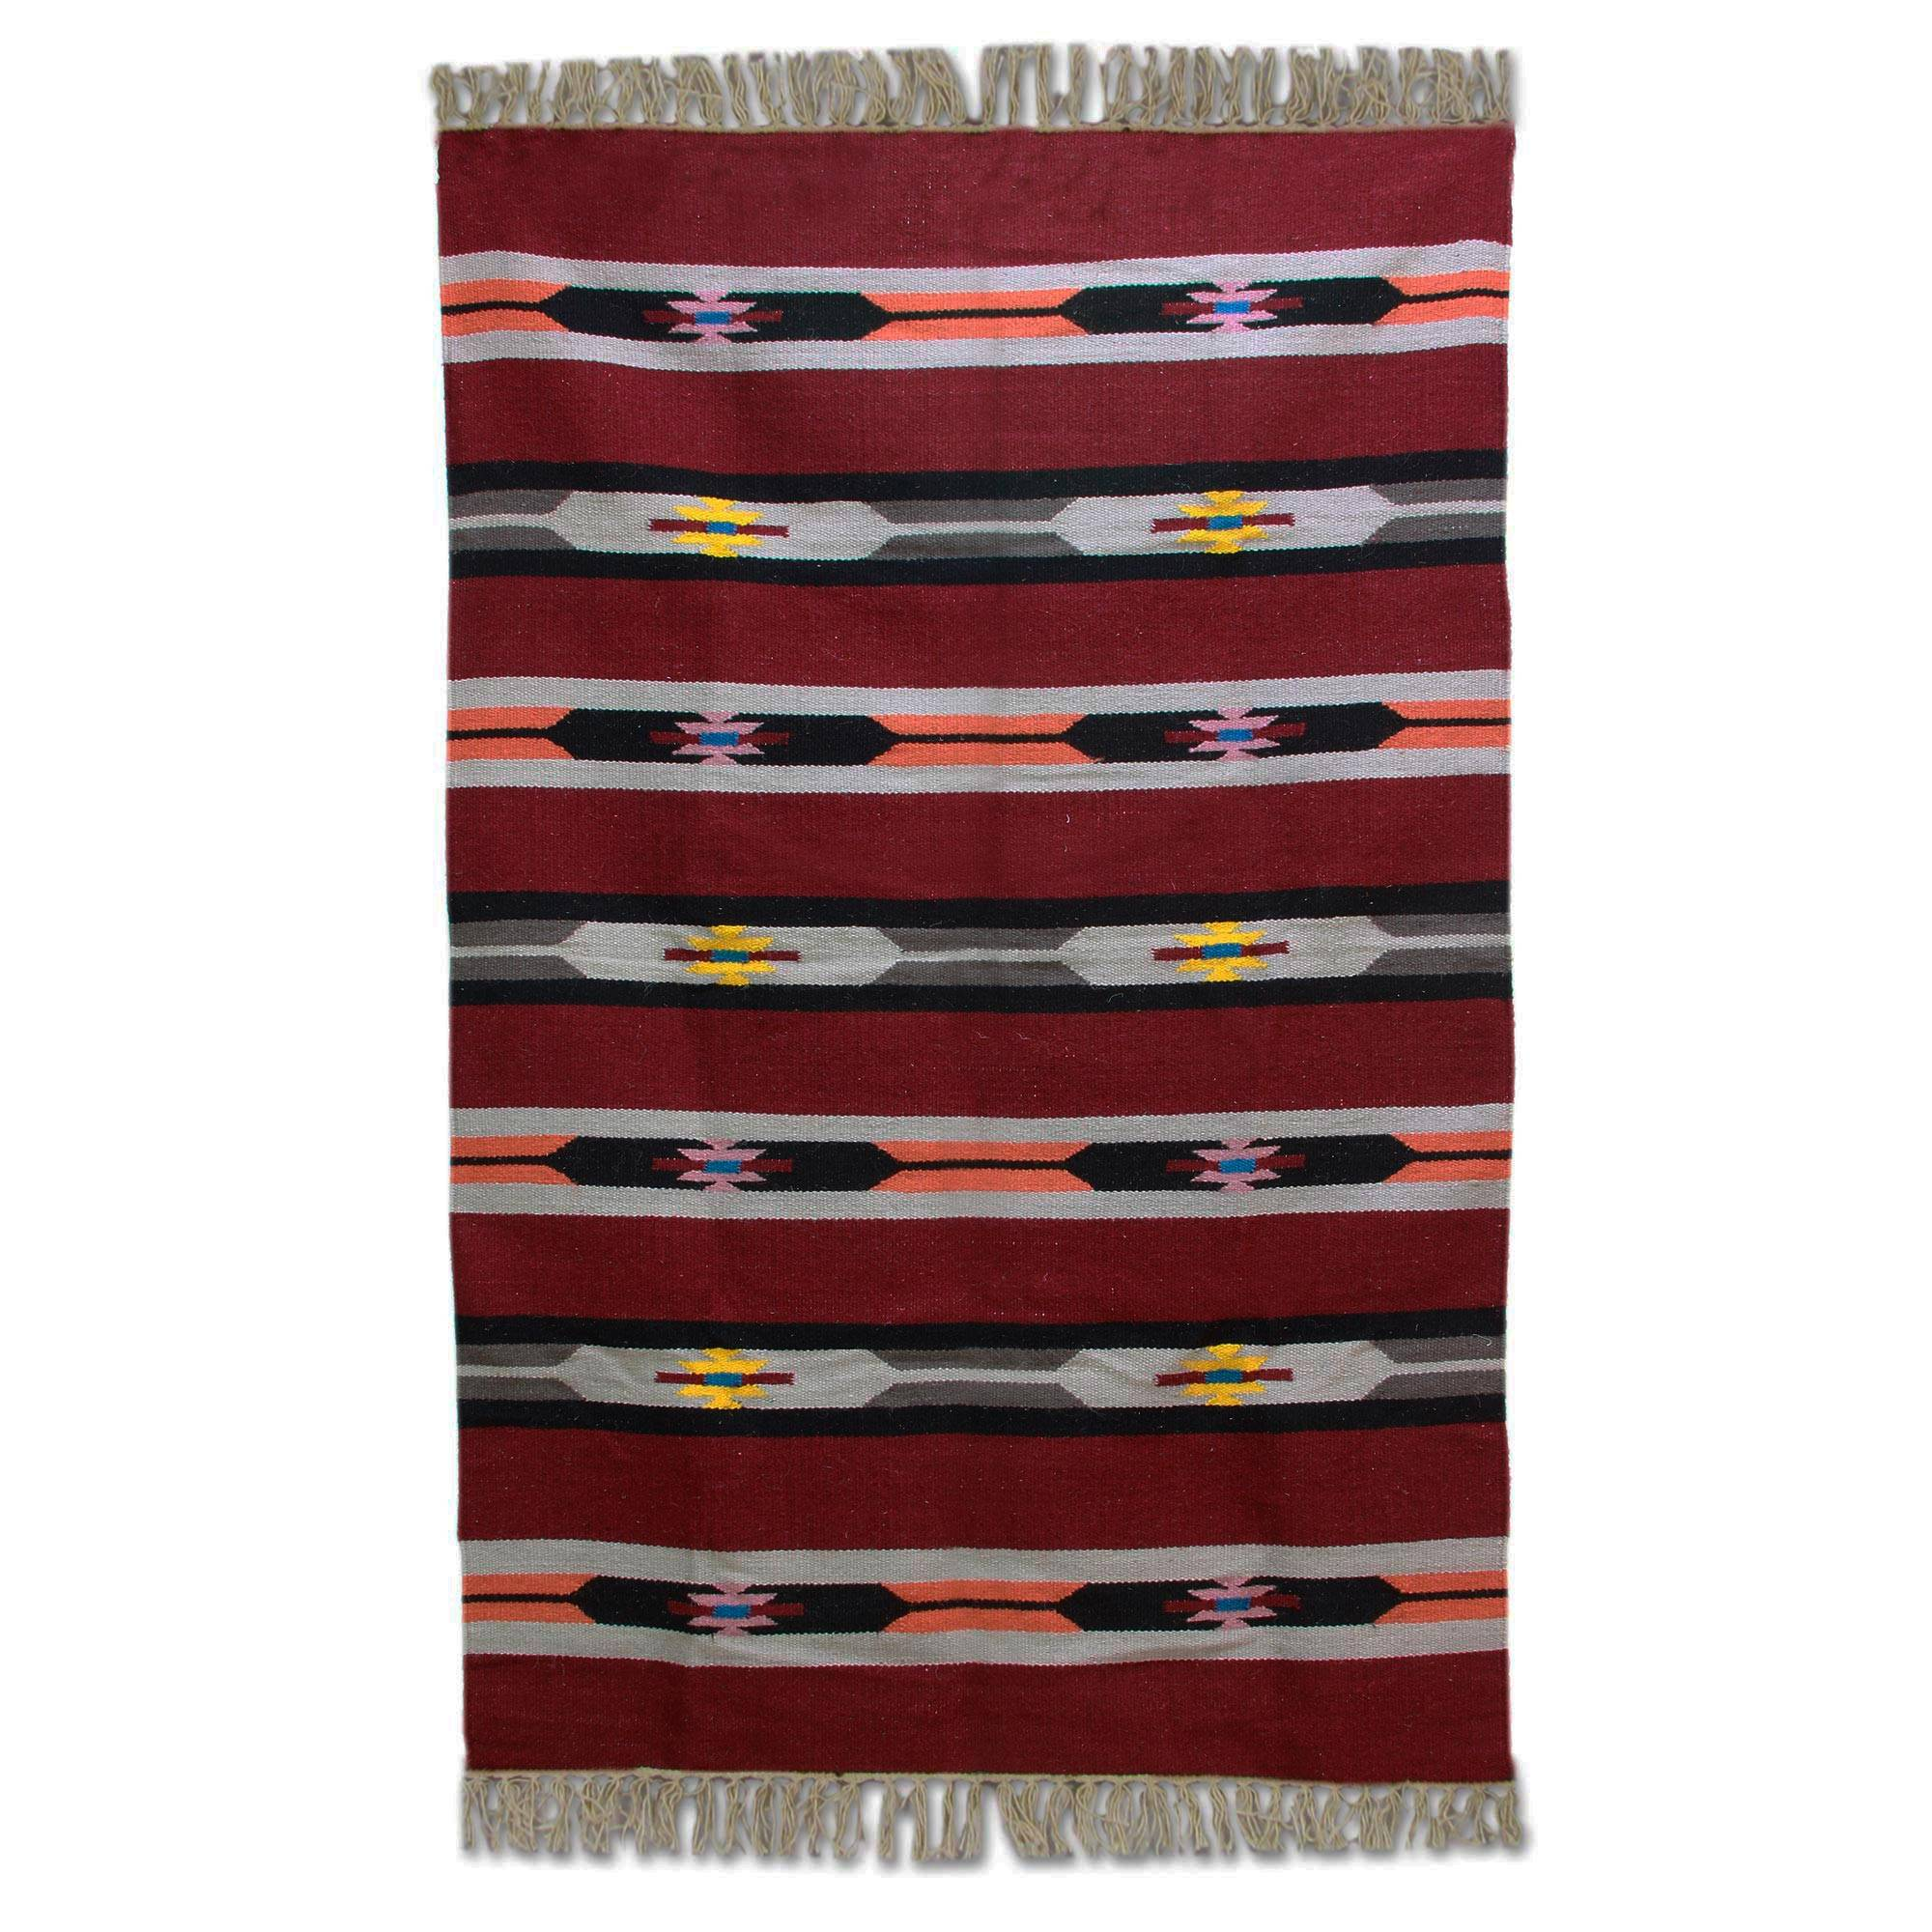 Kiva Store Hand Woven Striped Wool Area Rug In Cherry